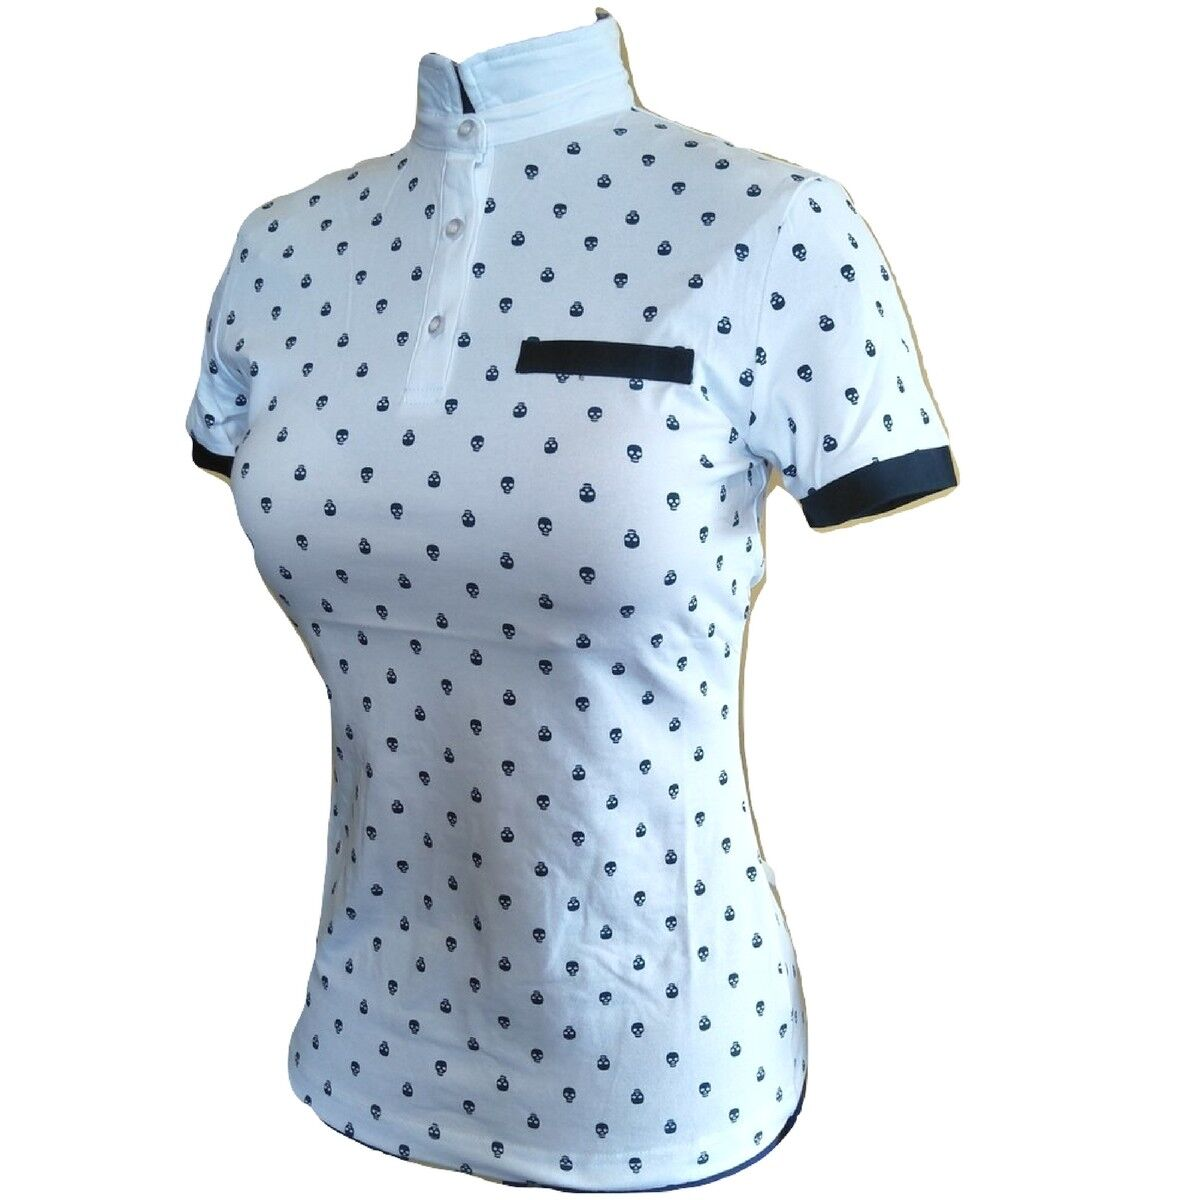 White Equestrian Shirt with Skull Print - Congreens from  polo to ratcatcher  factory direct